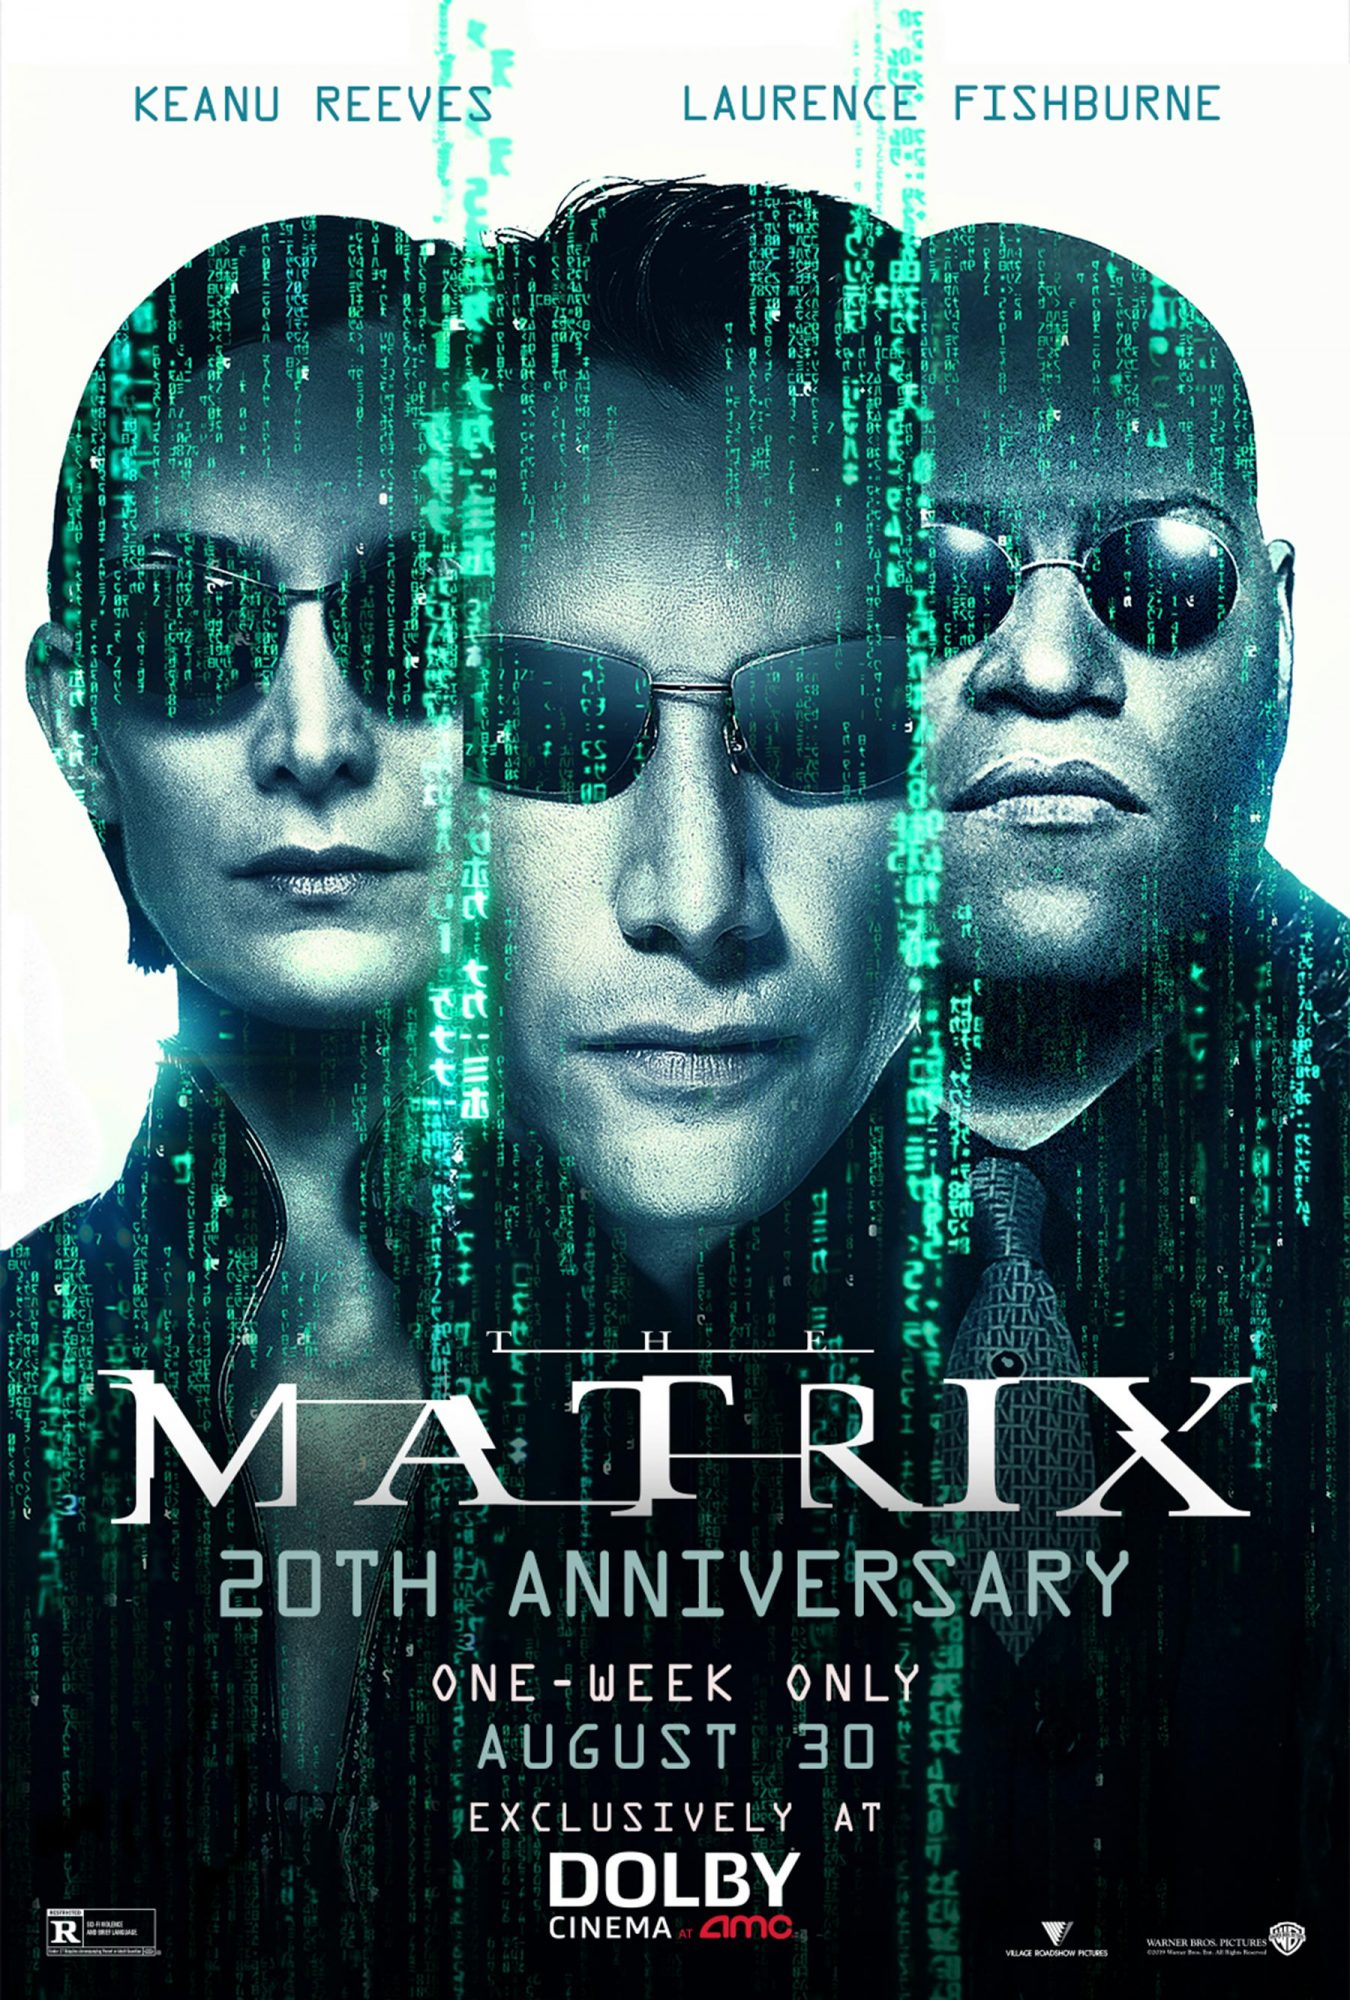 The Matrix 20th Anniversary movie poster